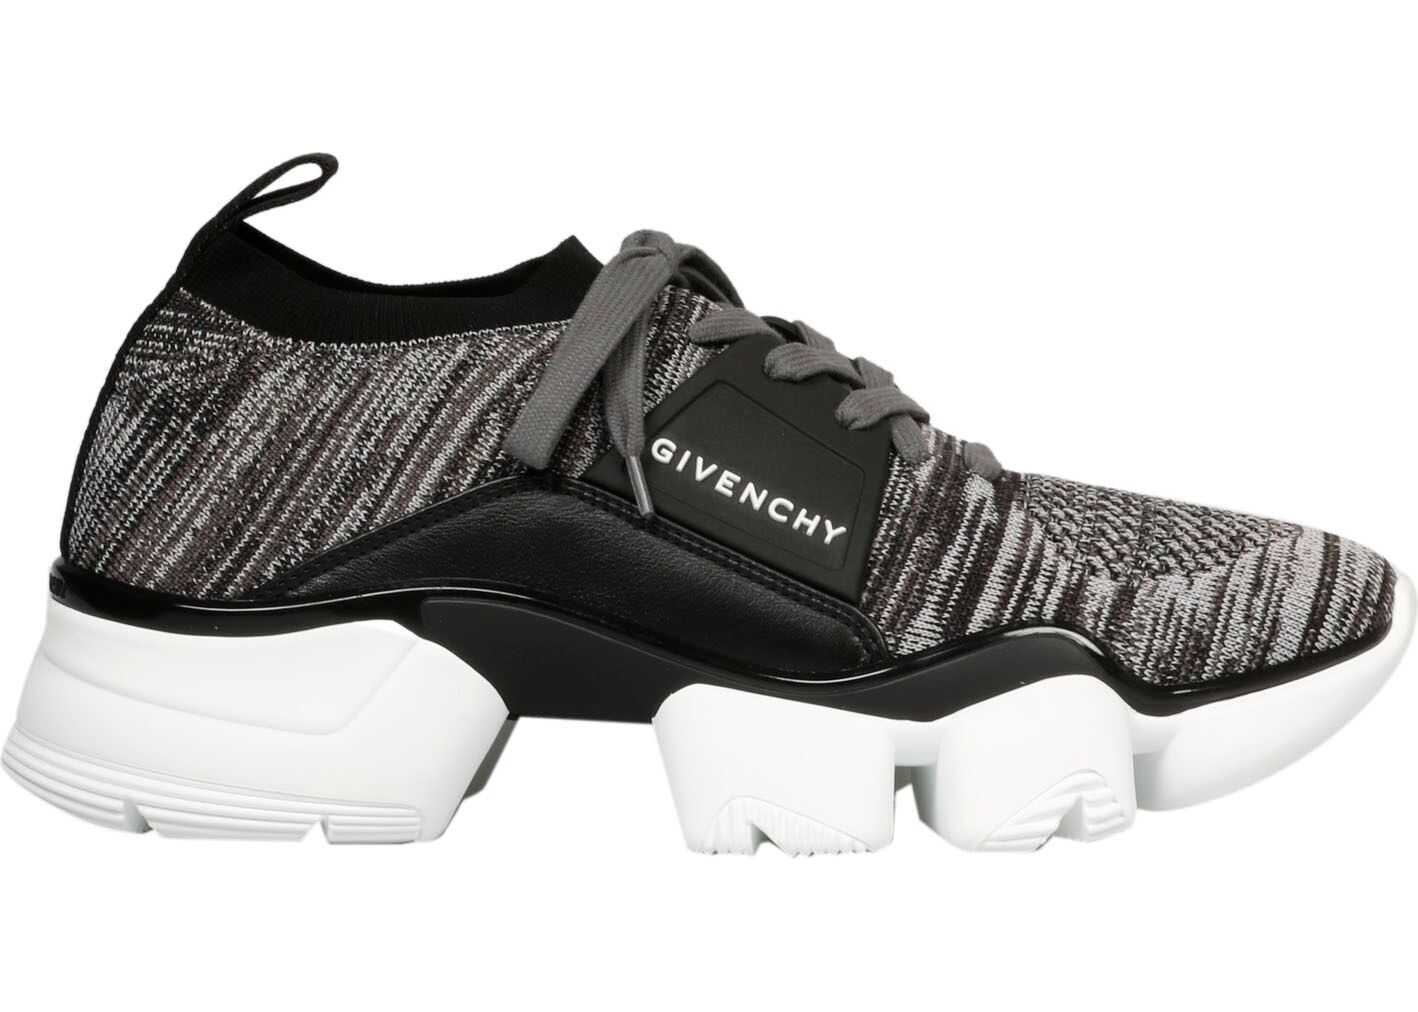 Givenchy Polyester Sneakers MULTICOLOR